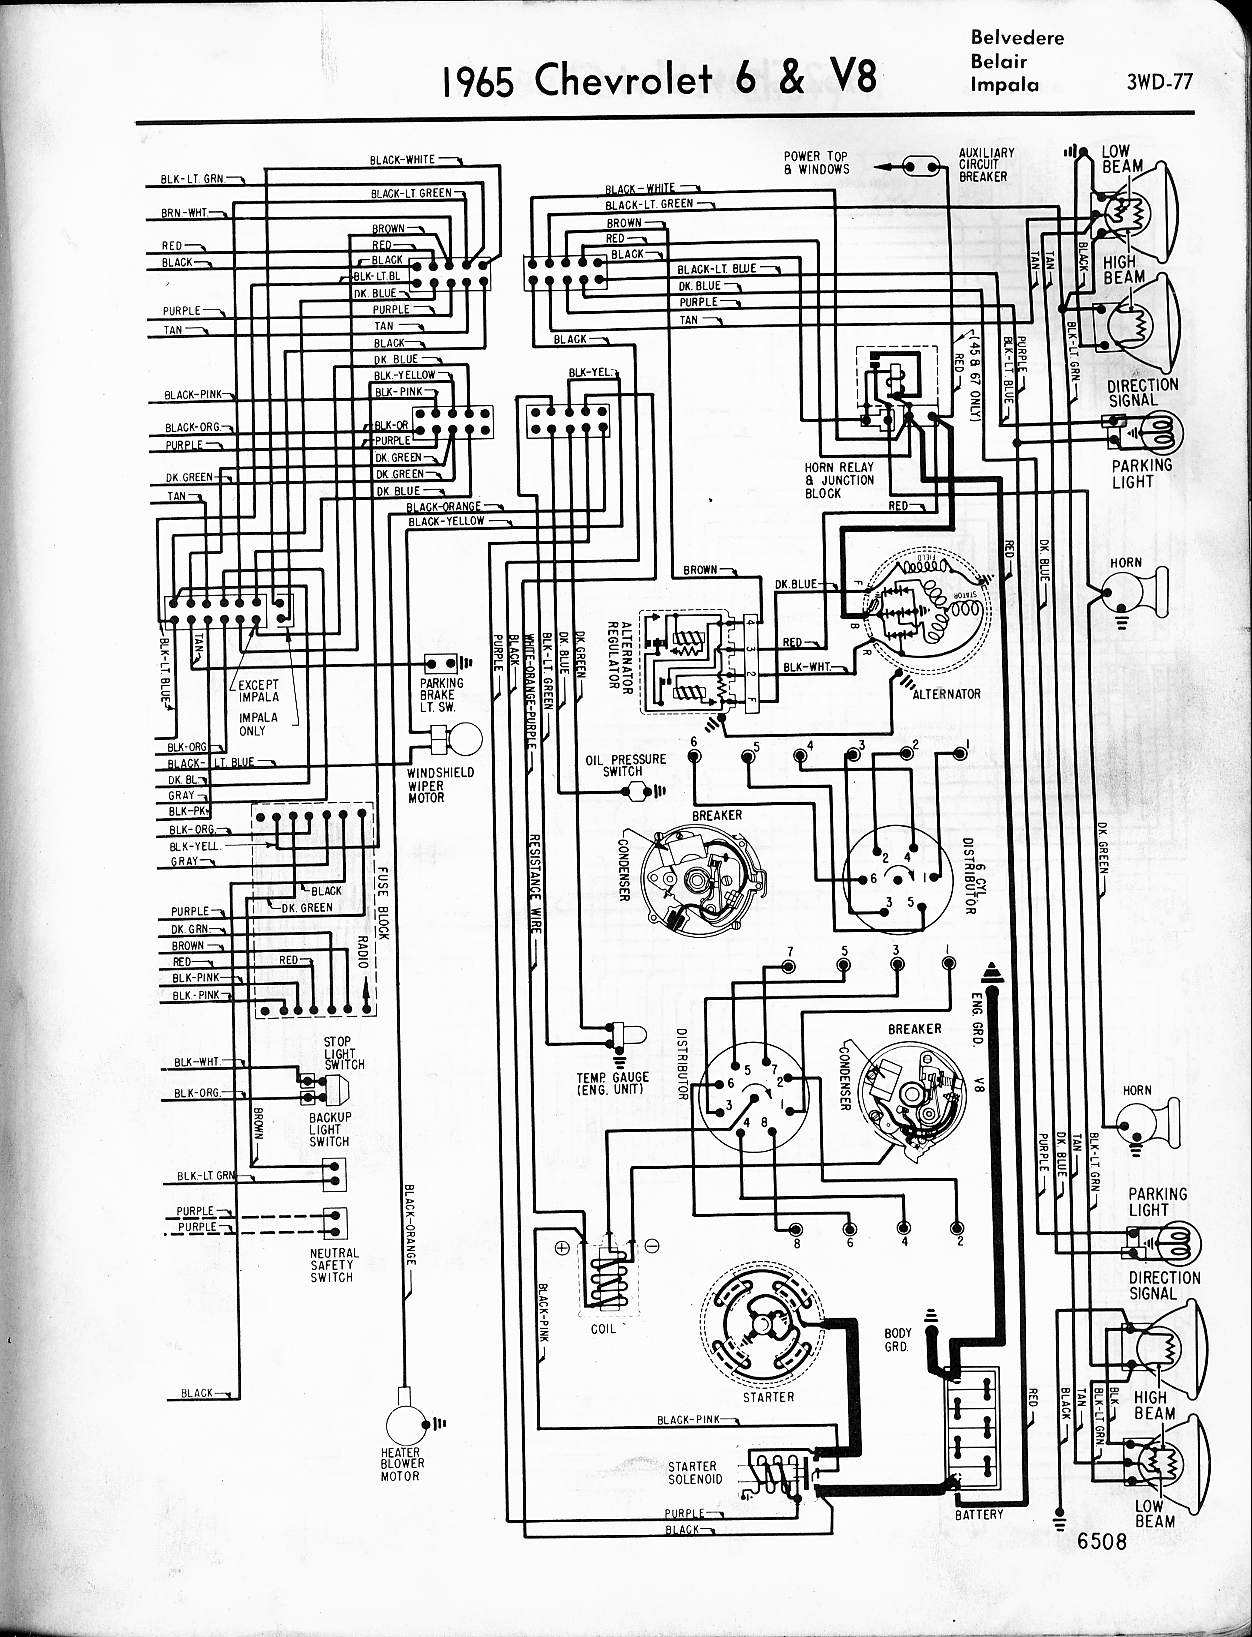 1965 chevy chevelle wiring diagram zxlmvgs chevy truck underhood wiring diagrams chuck's chevy truck pages 1964 chevy truck wiring diagram at alyssarenee.co